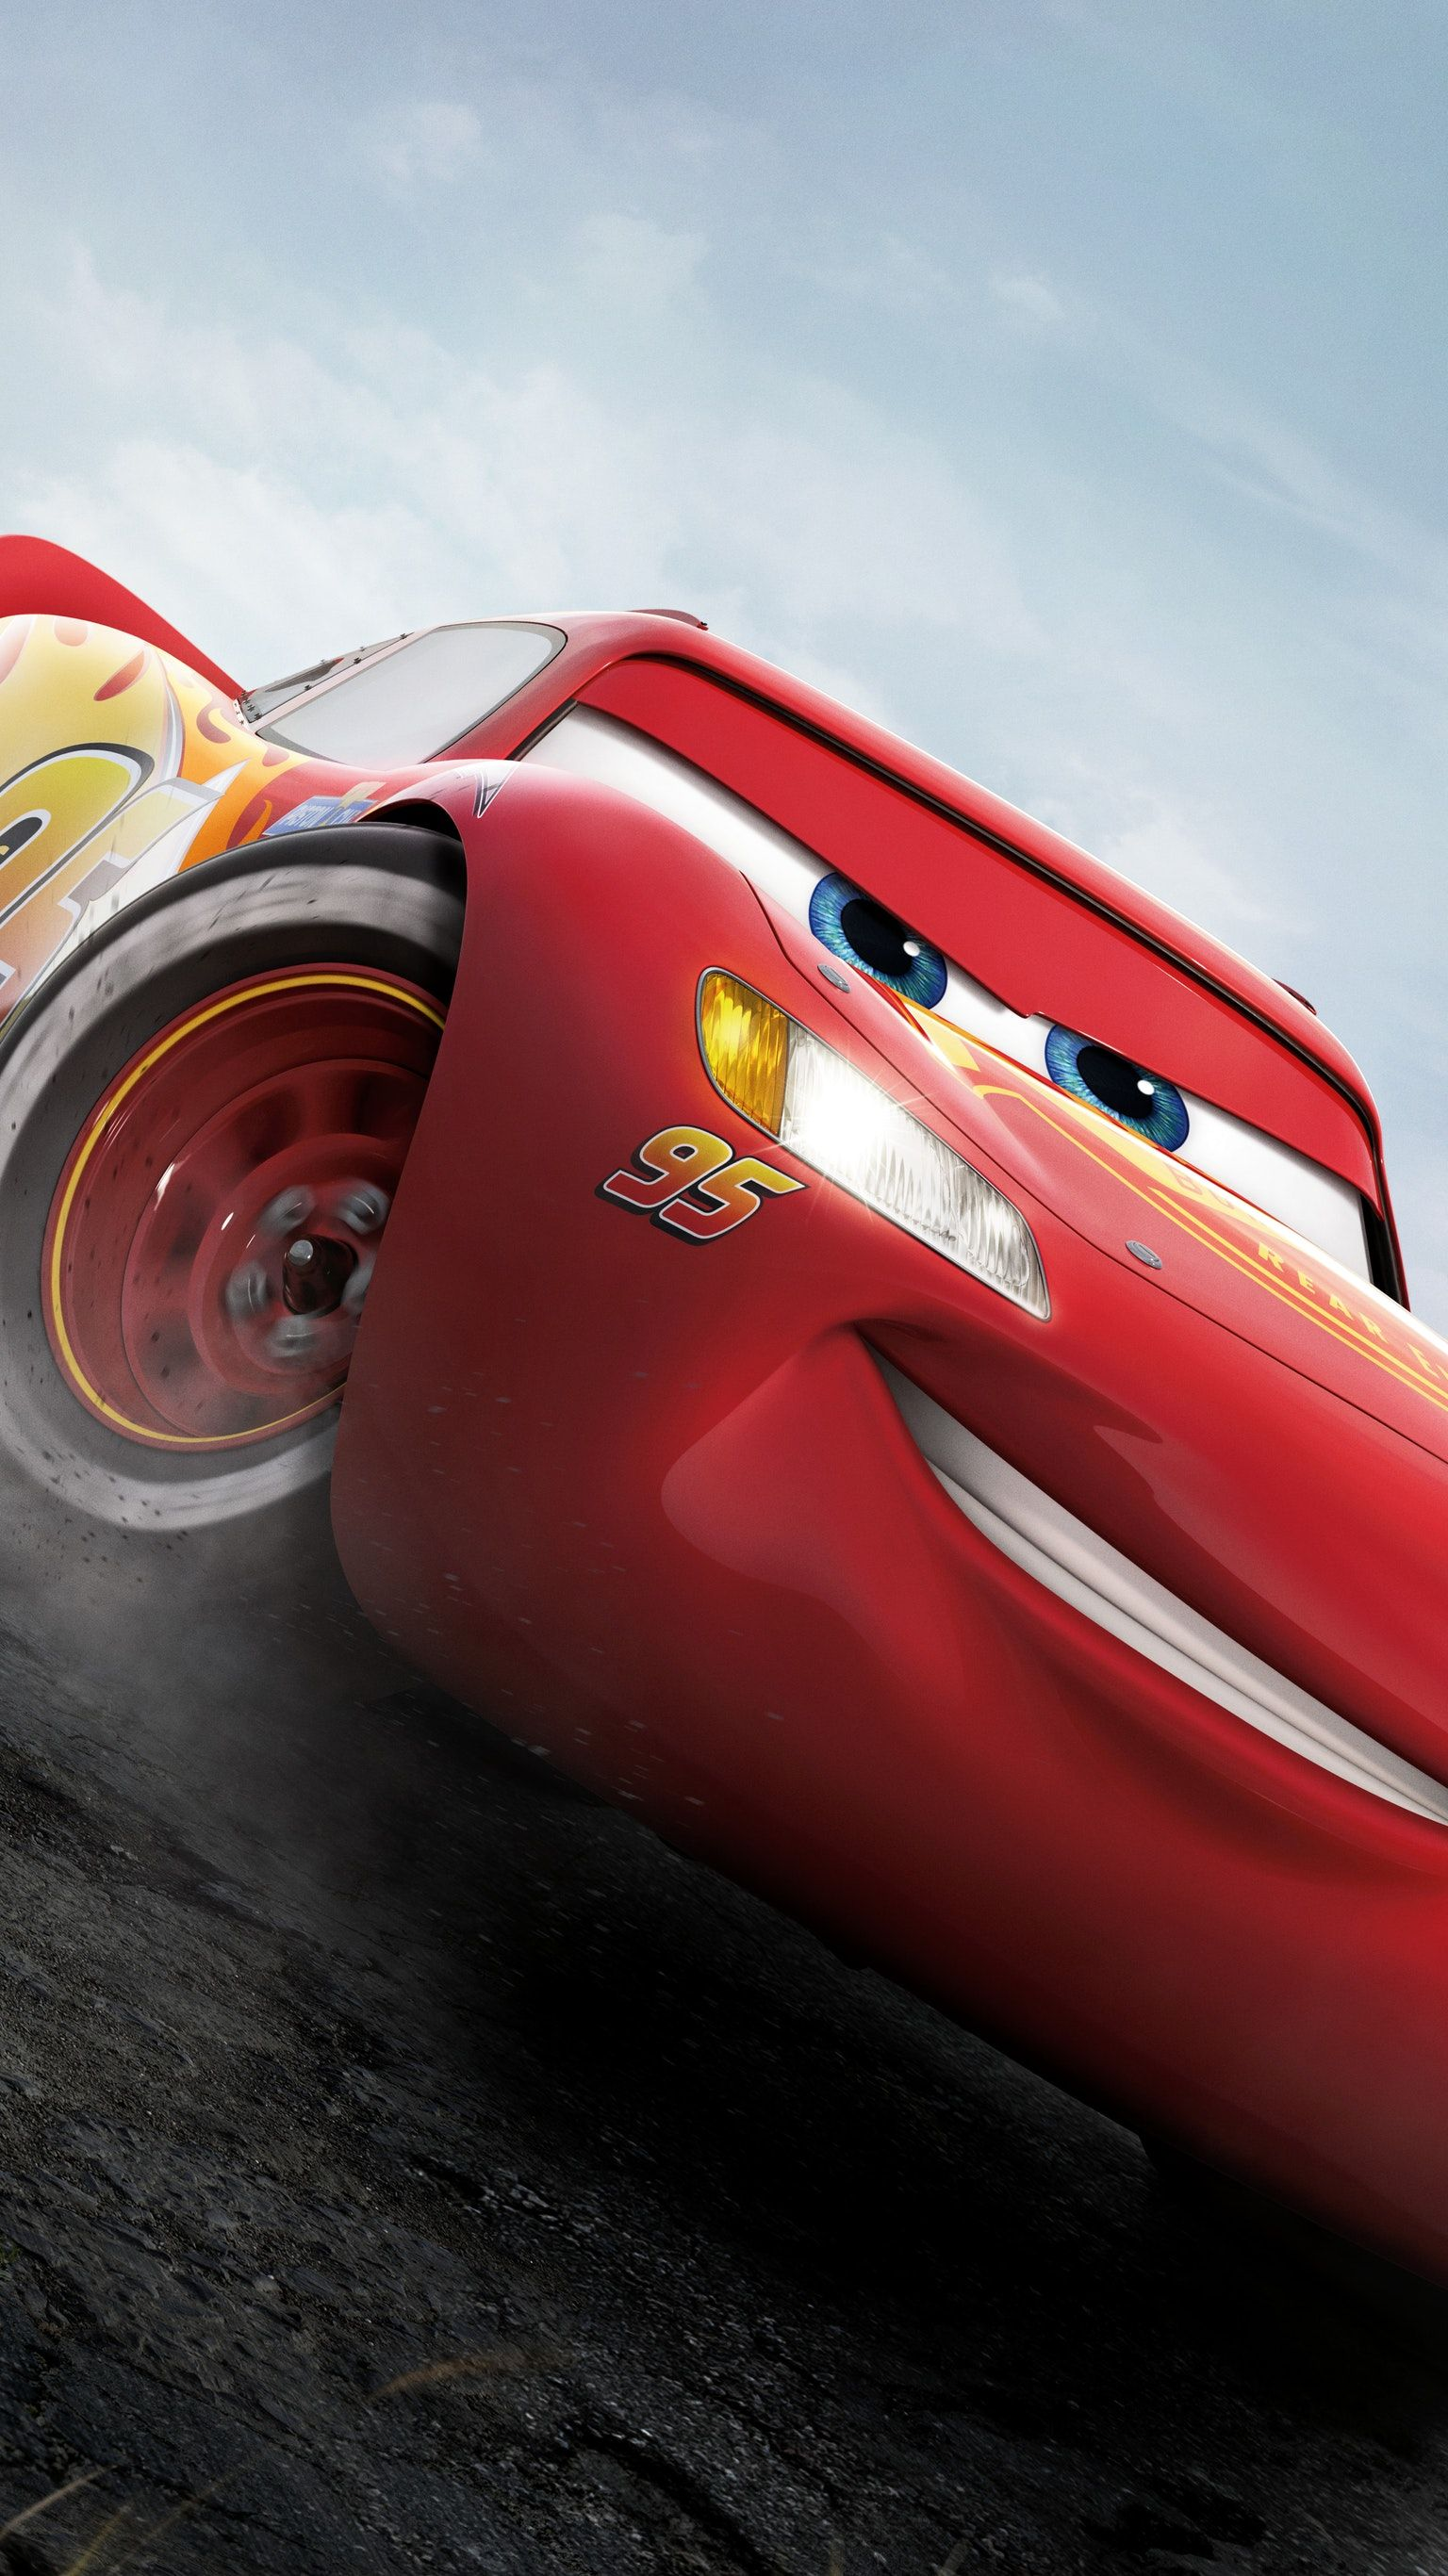 Cars 3 2017 Phone Wallpaper Carros Da Disney Carros 3 Filme